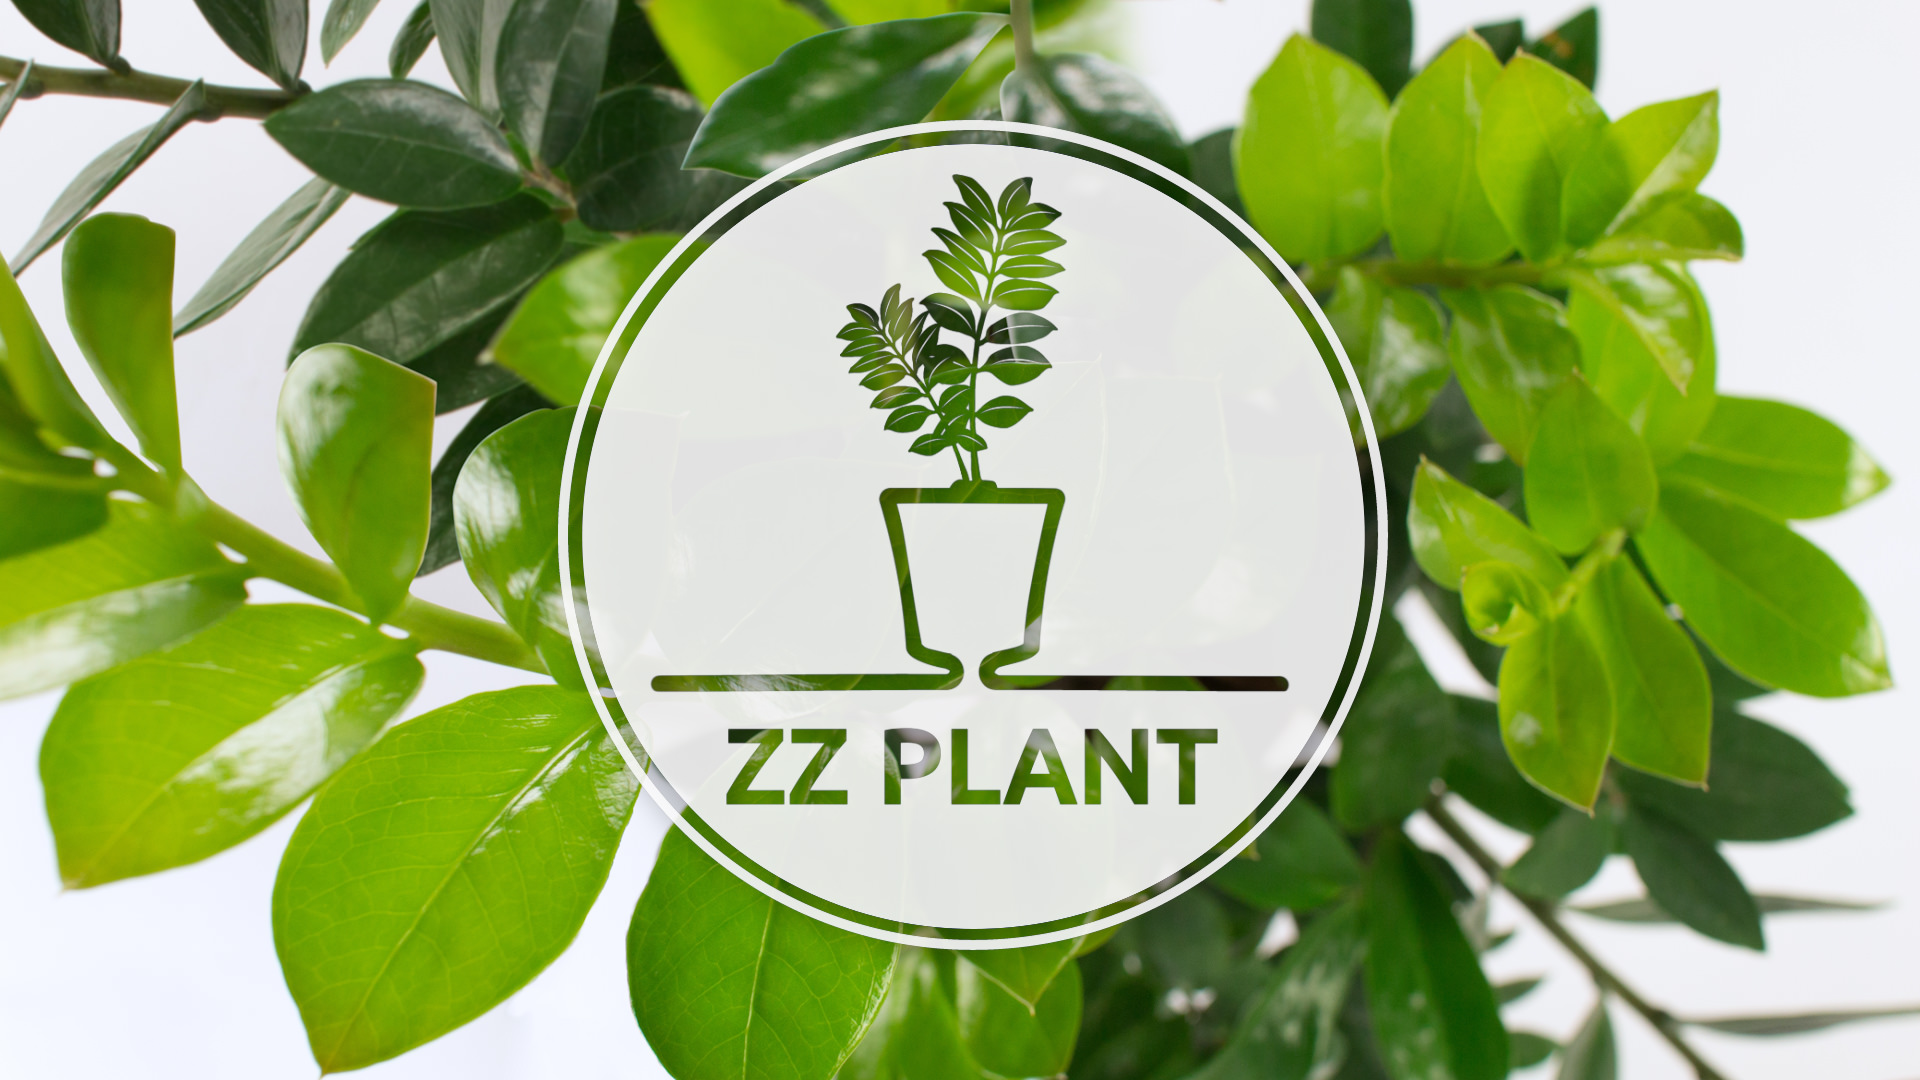 How To Repot Zamioculcas In Arte Green Stpatrick Special Edition How To Plant By Santino How To Plant By Santino Gardening Blog Shop